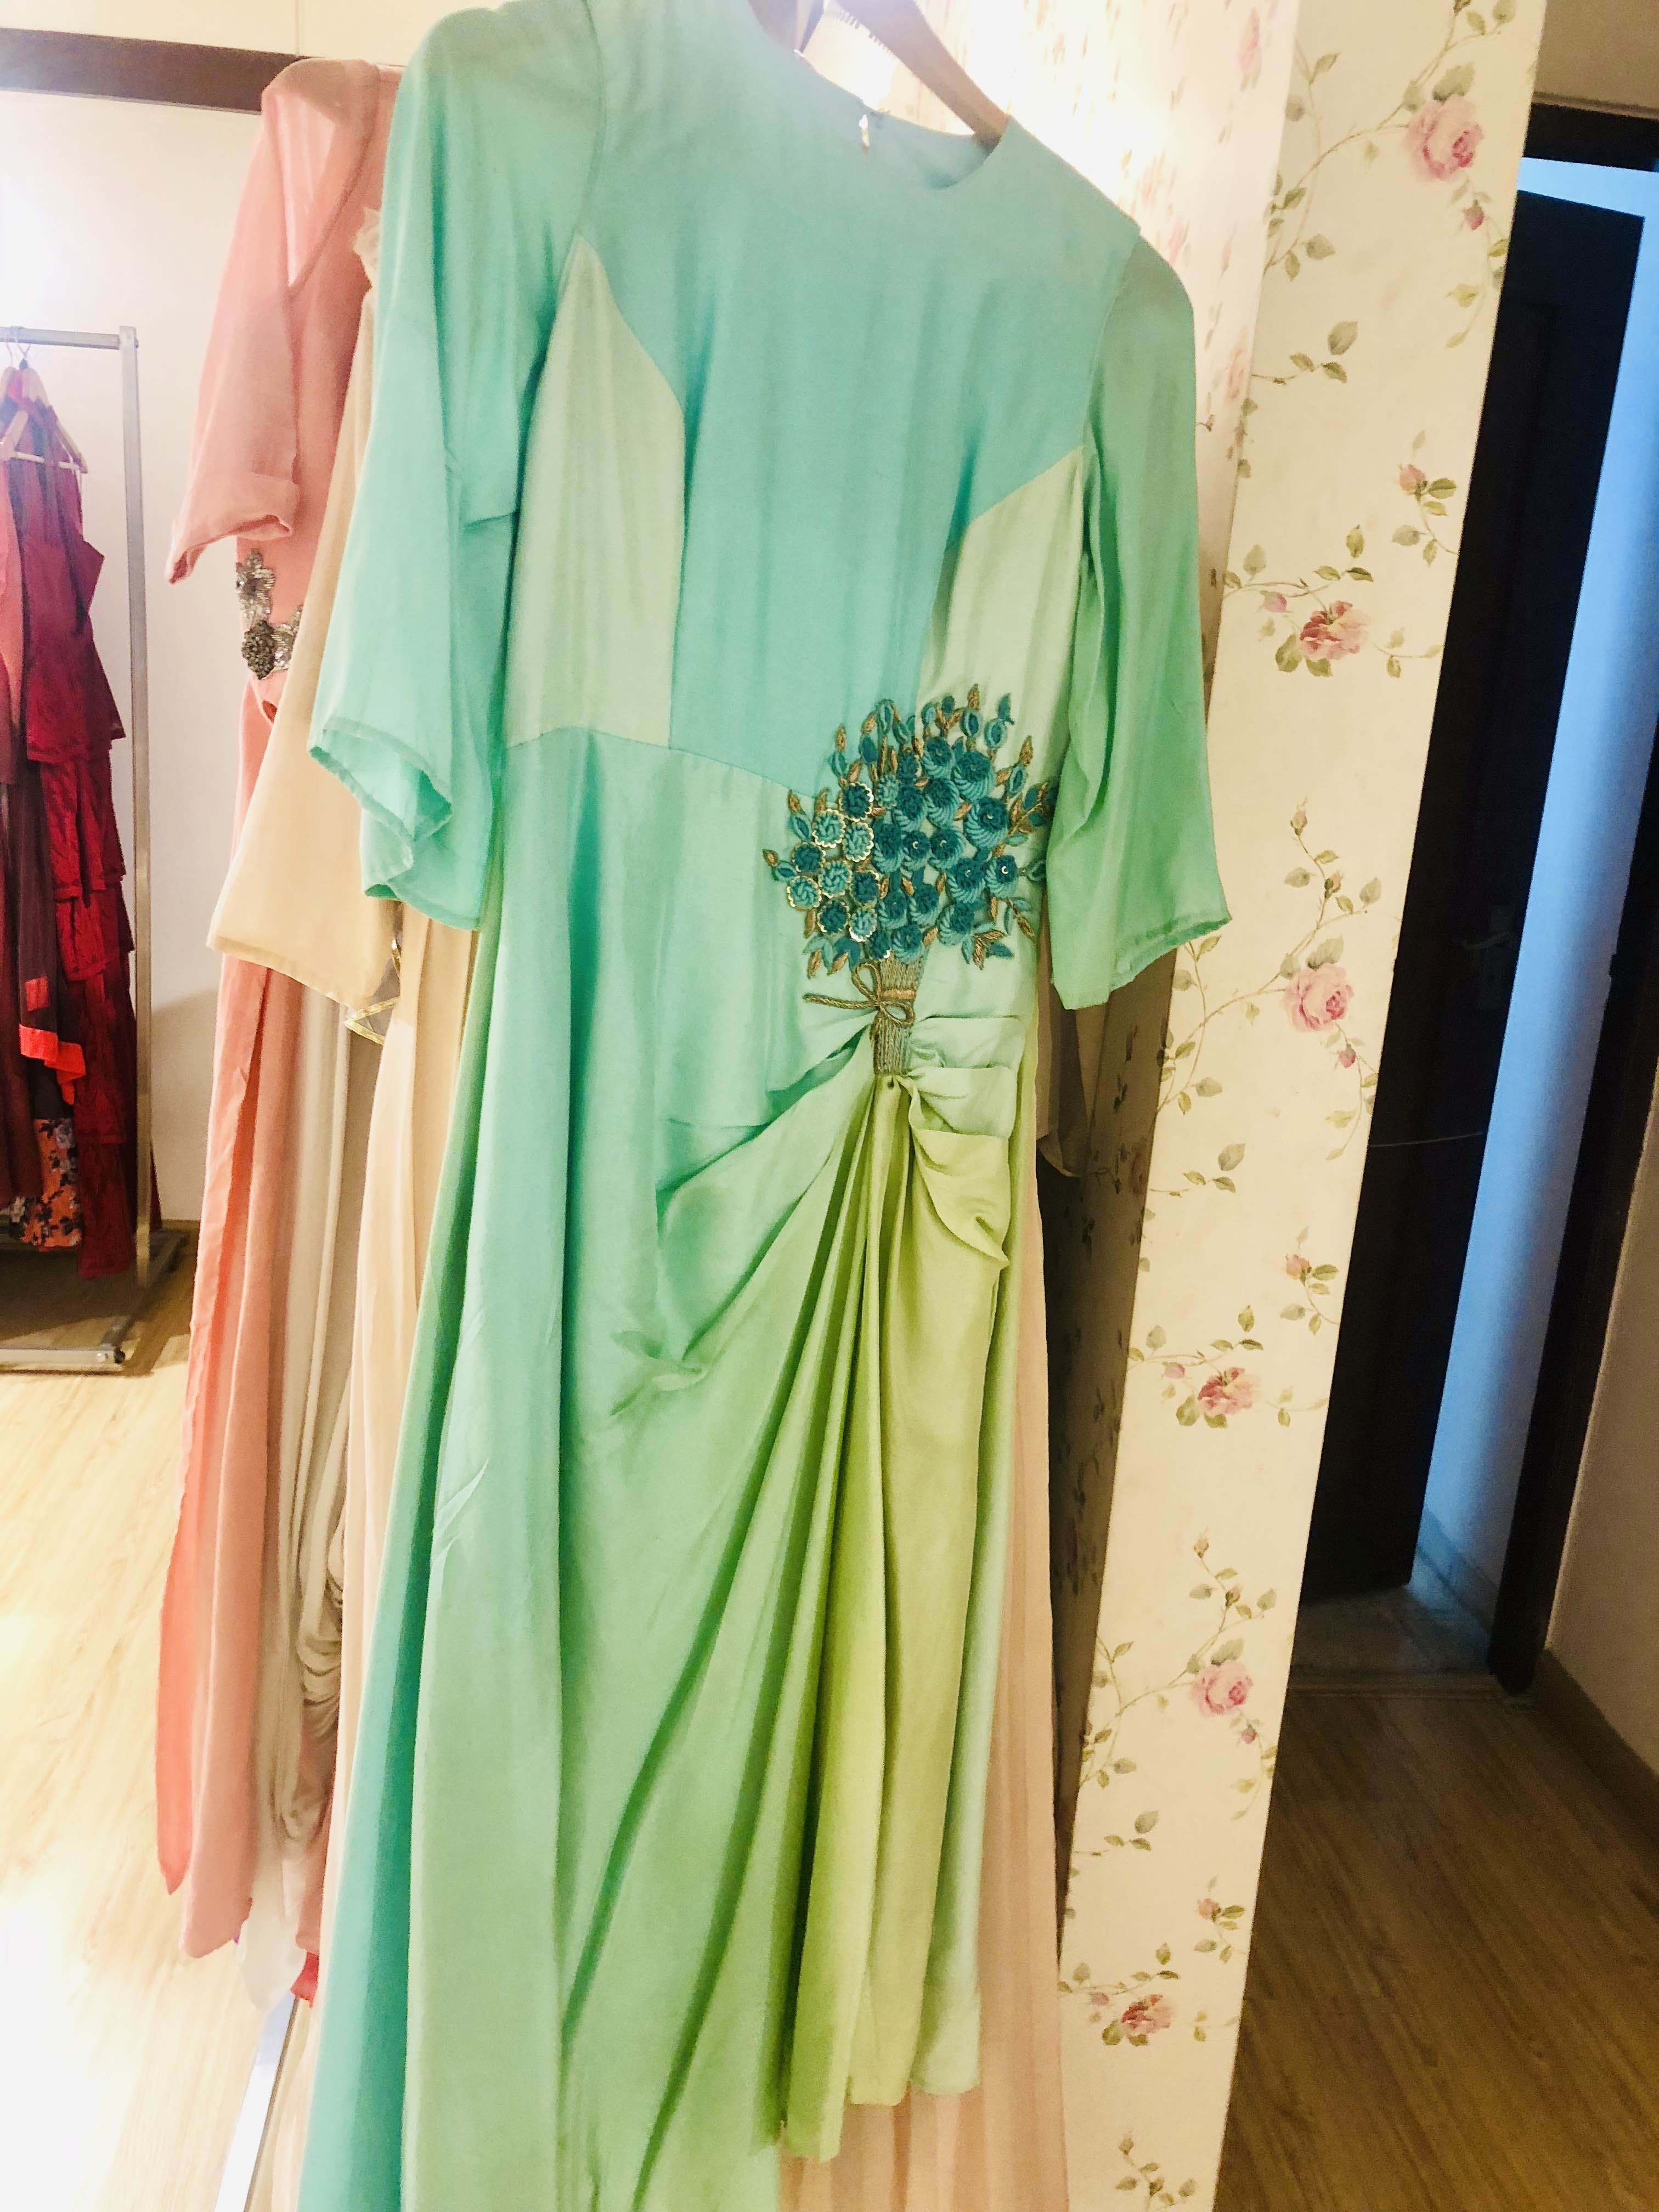 Clothing,Green,Dress,Formal wear,Boutique,Fashion design,Shoulder,Room,Outerwear,Textile